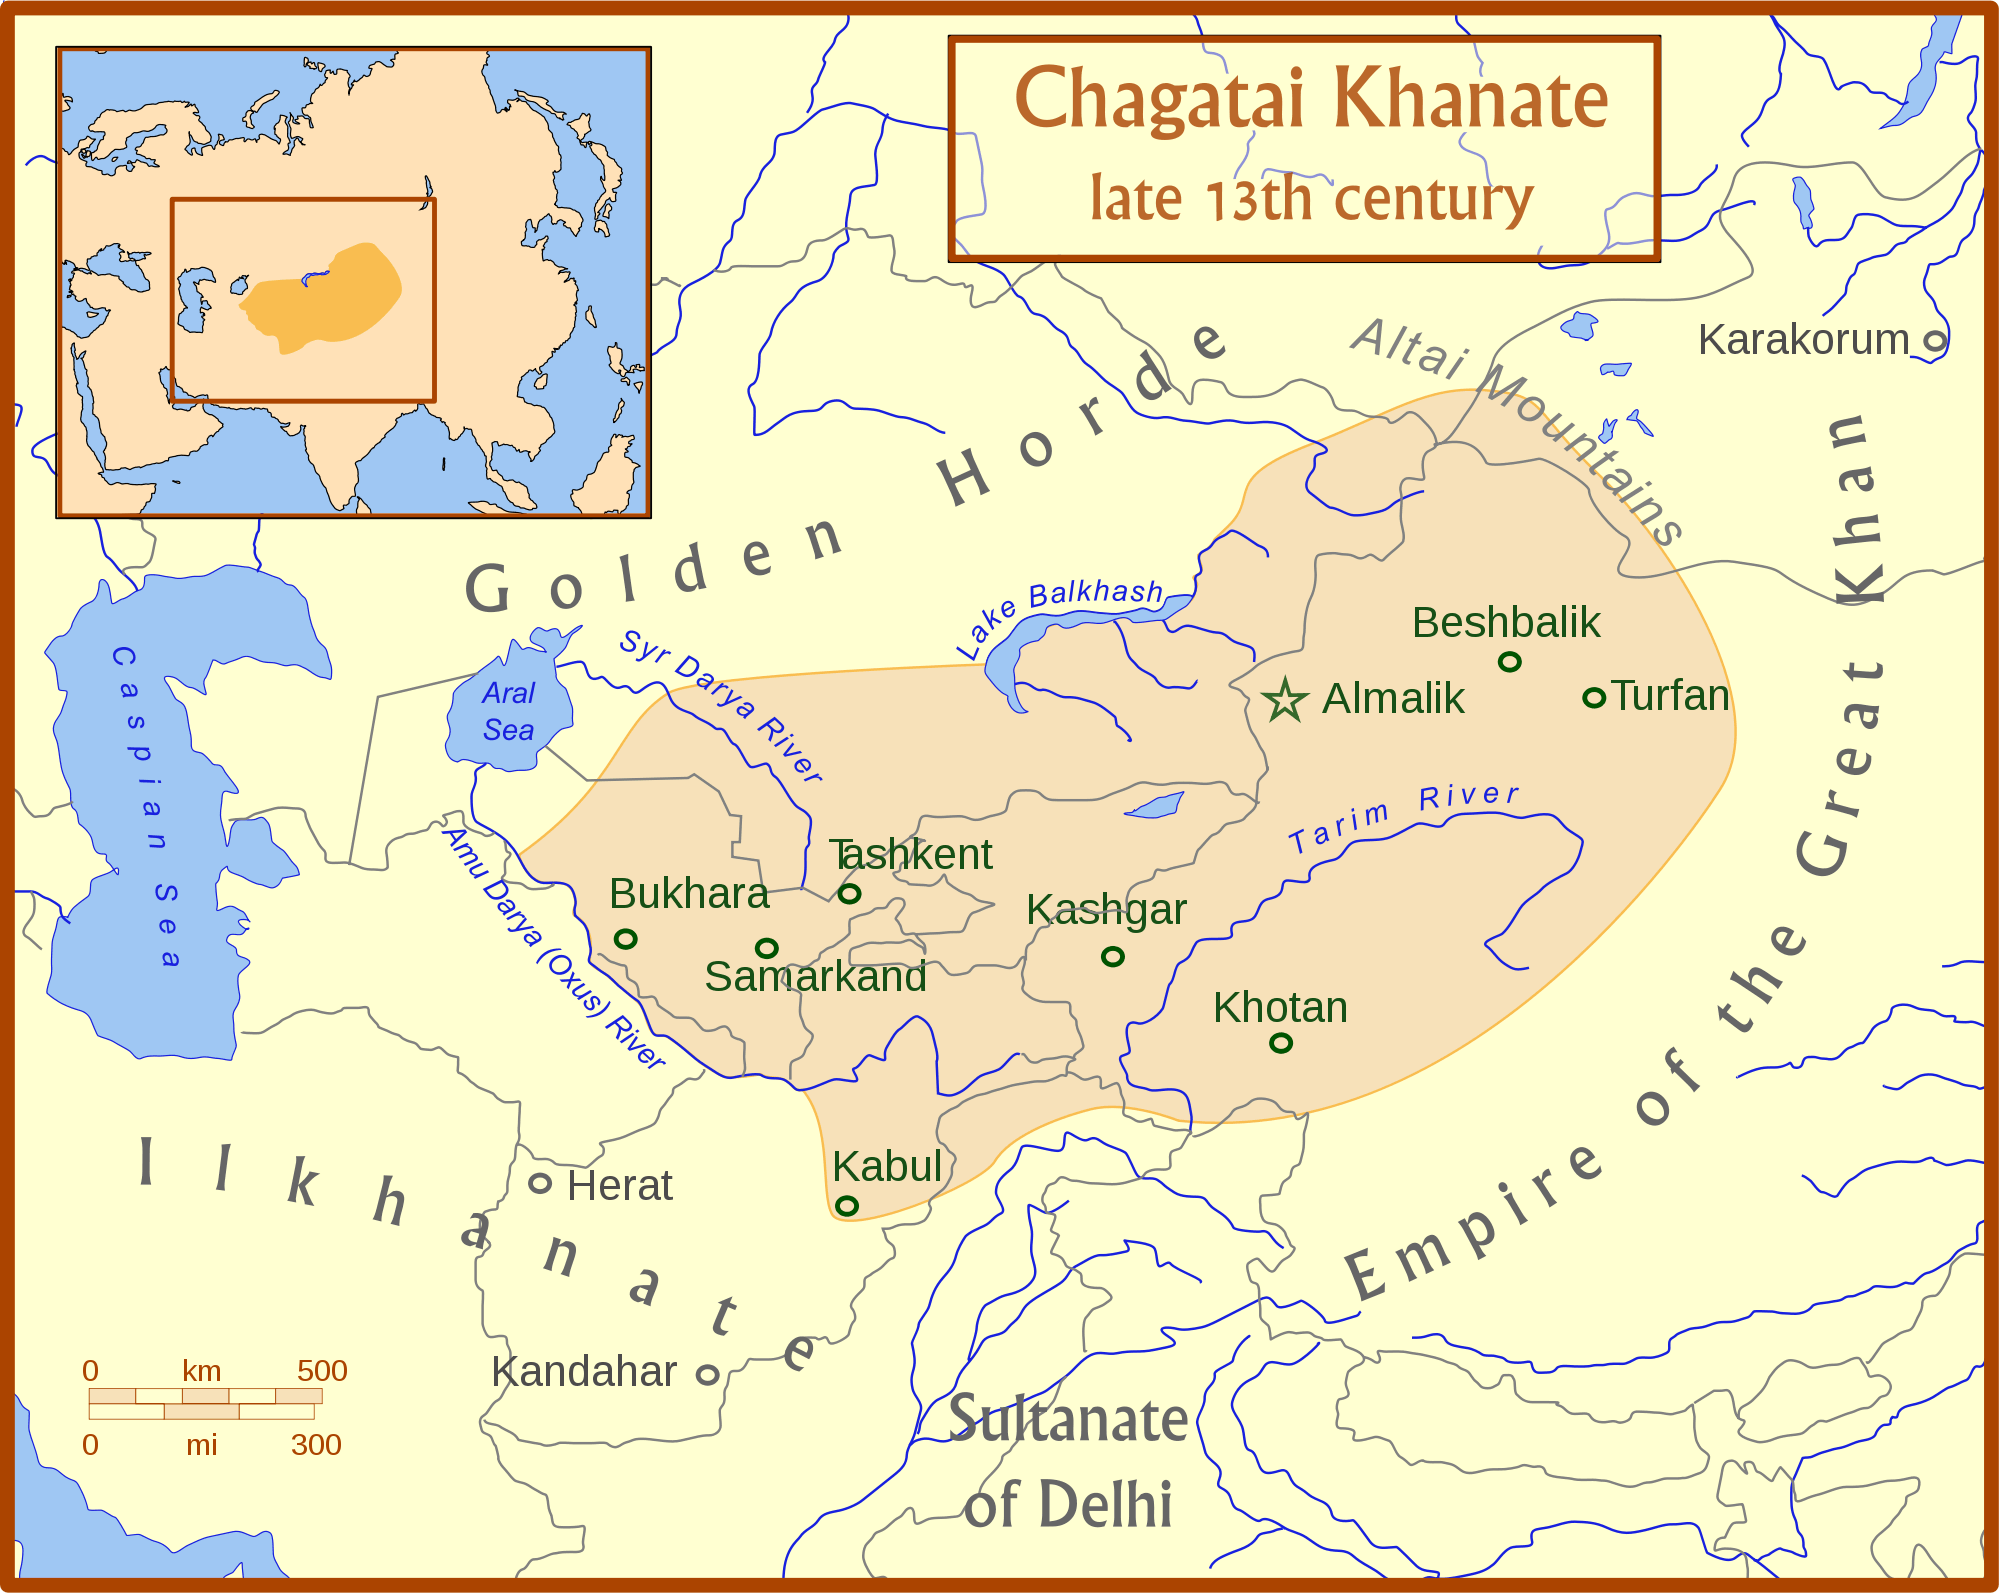 Chagatai Khanate Map